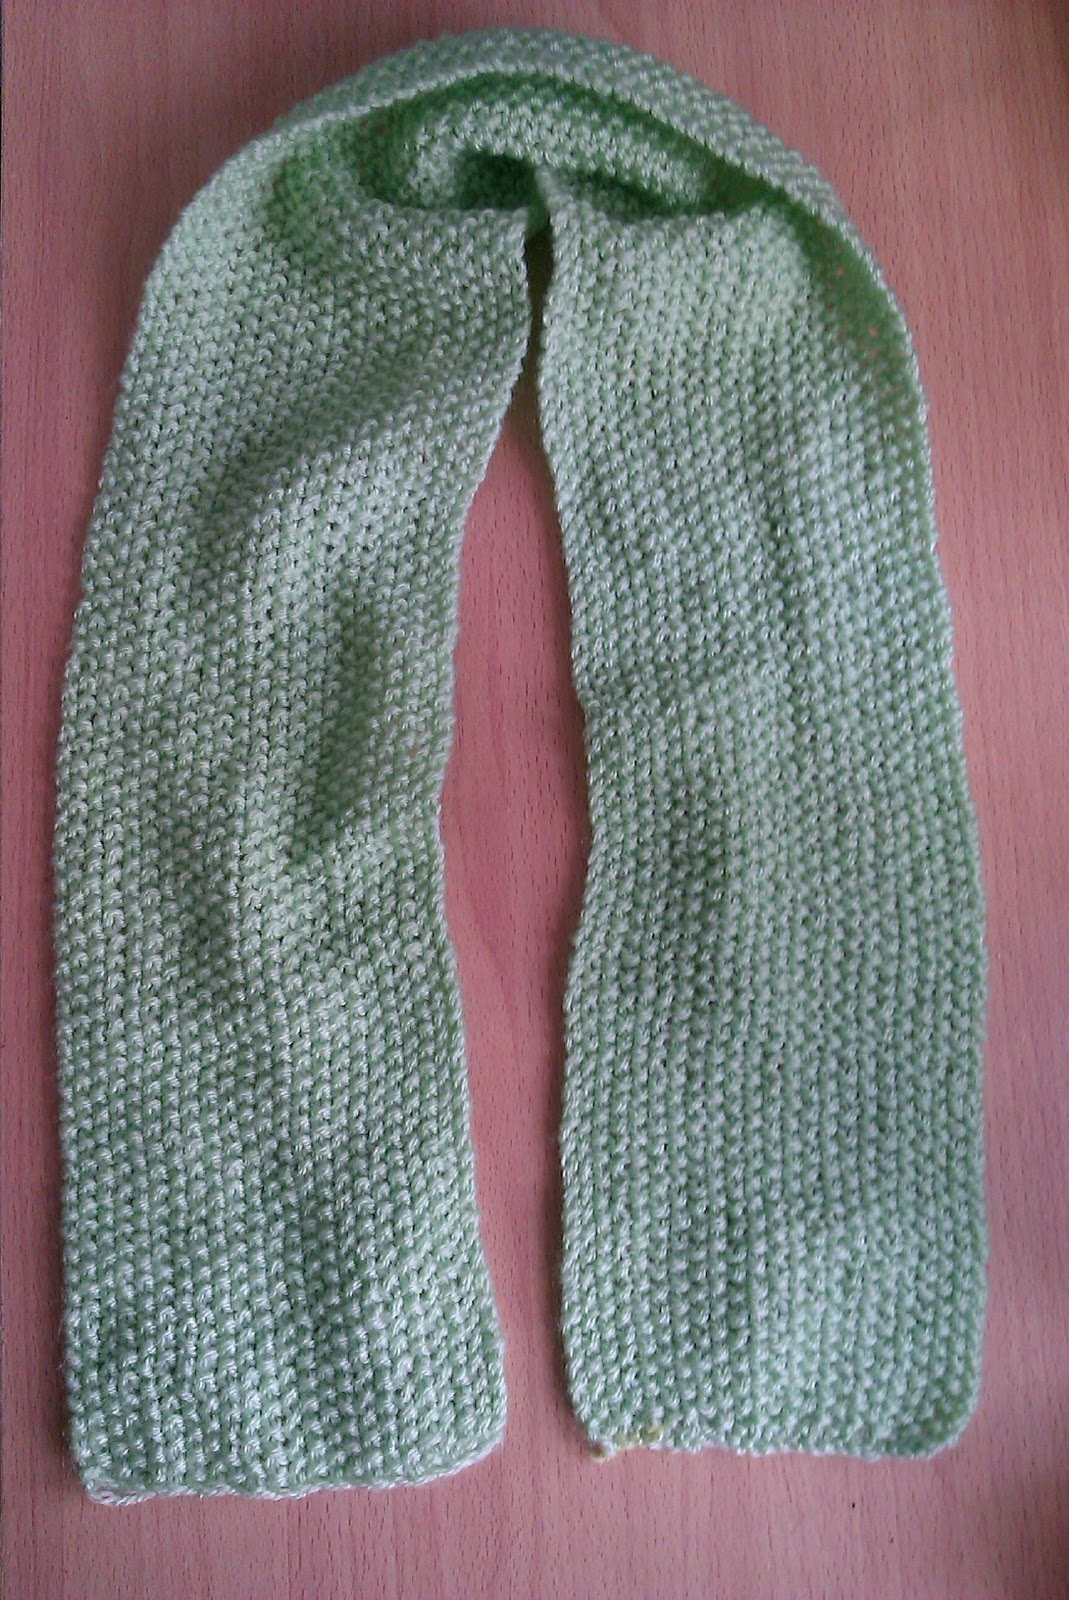 Knit Easie: Mossy Childs Scarf